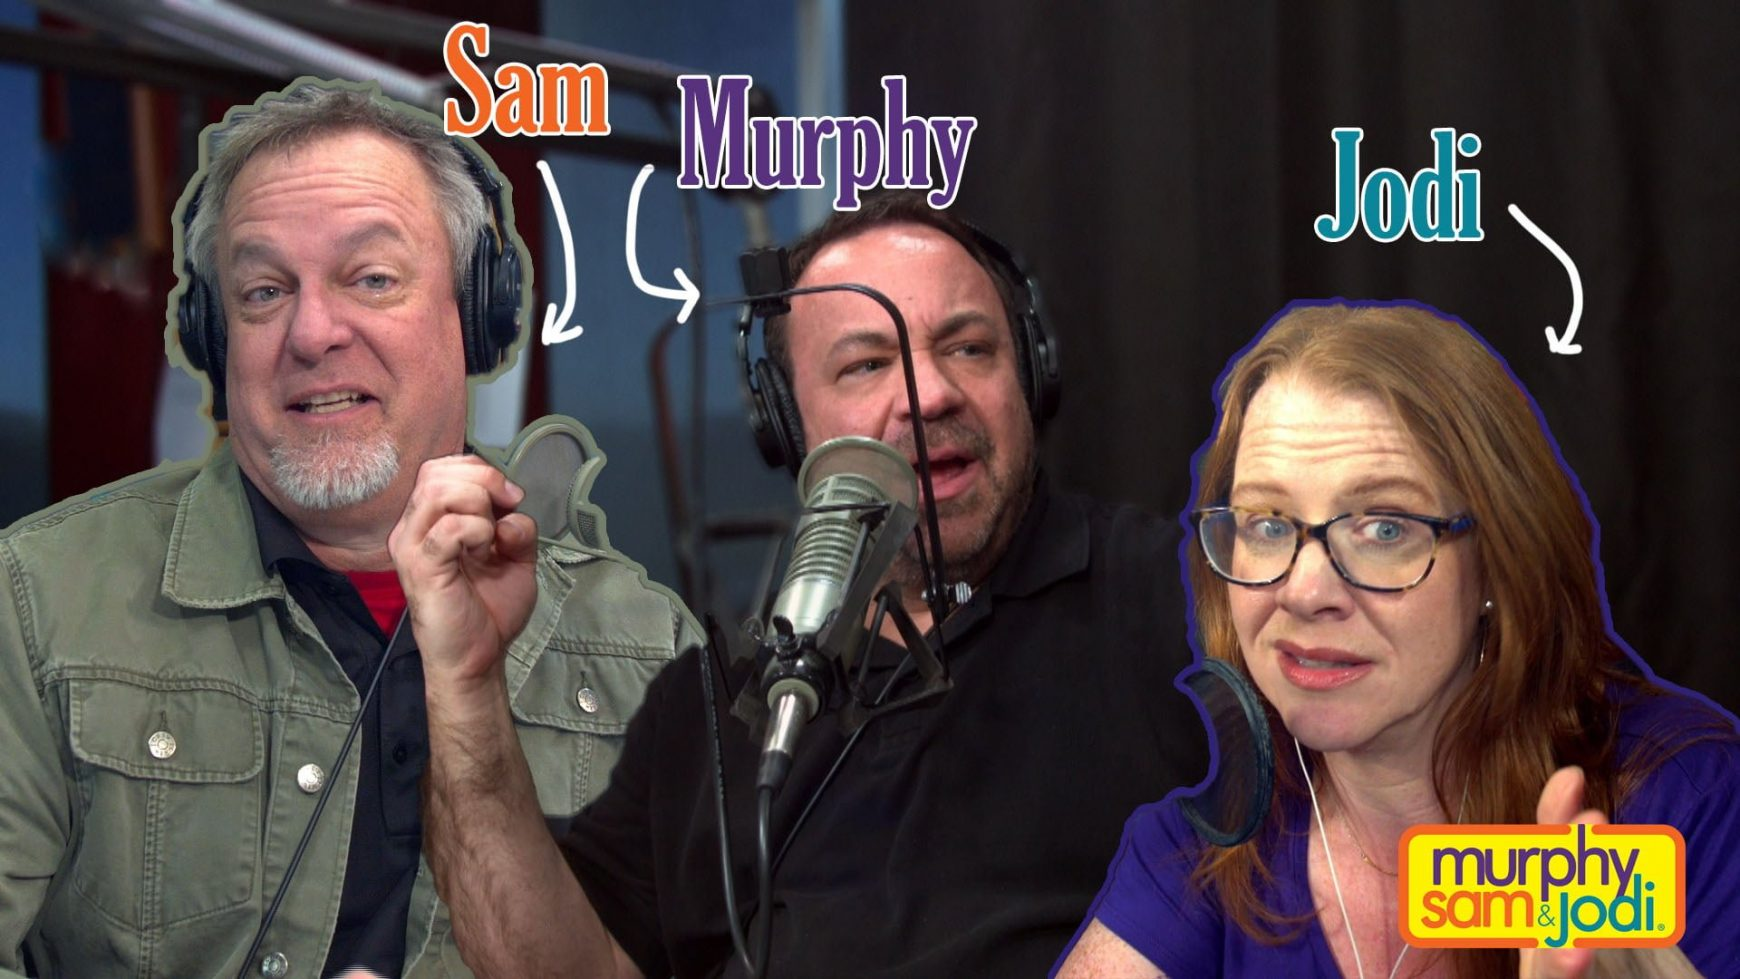 AFTER THE SHOW: Registry Fun